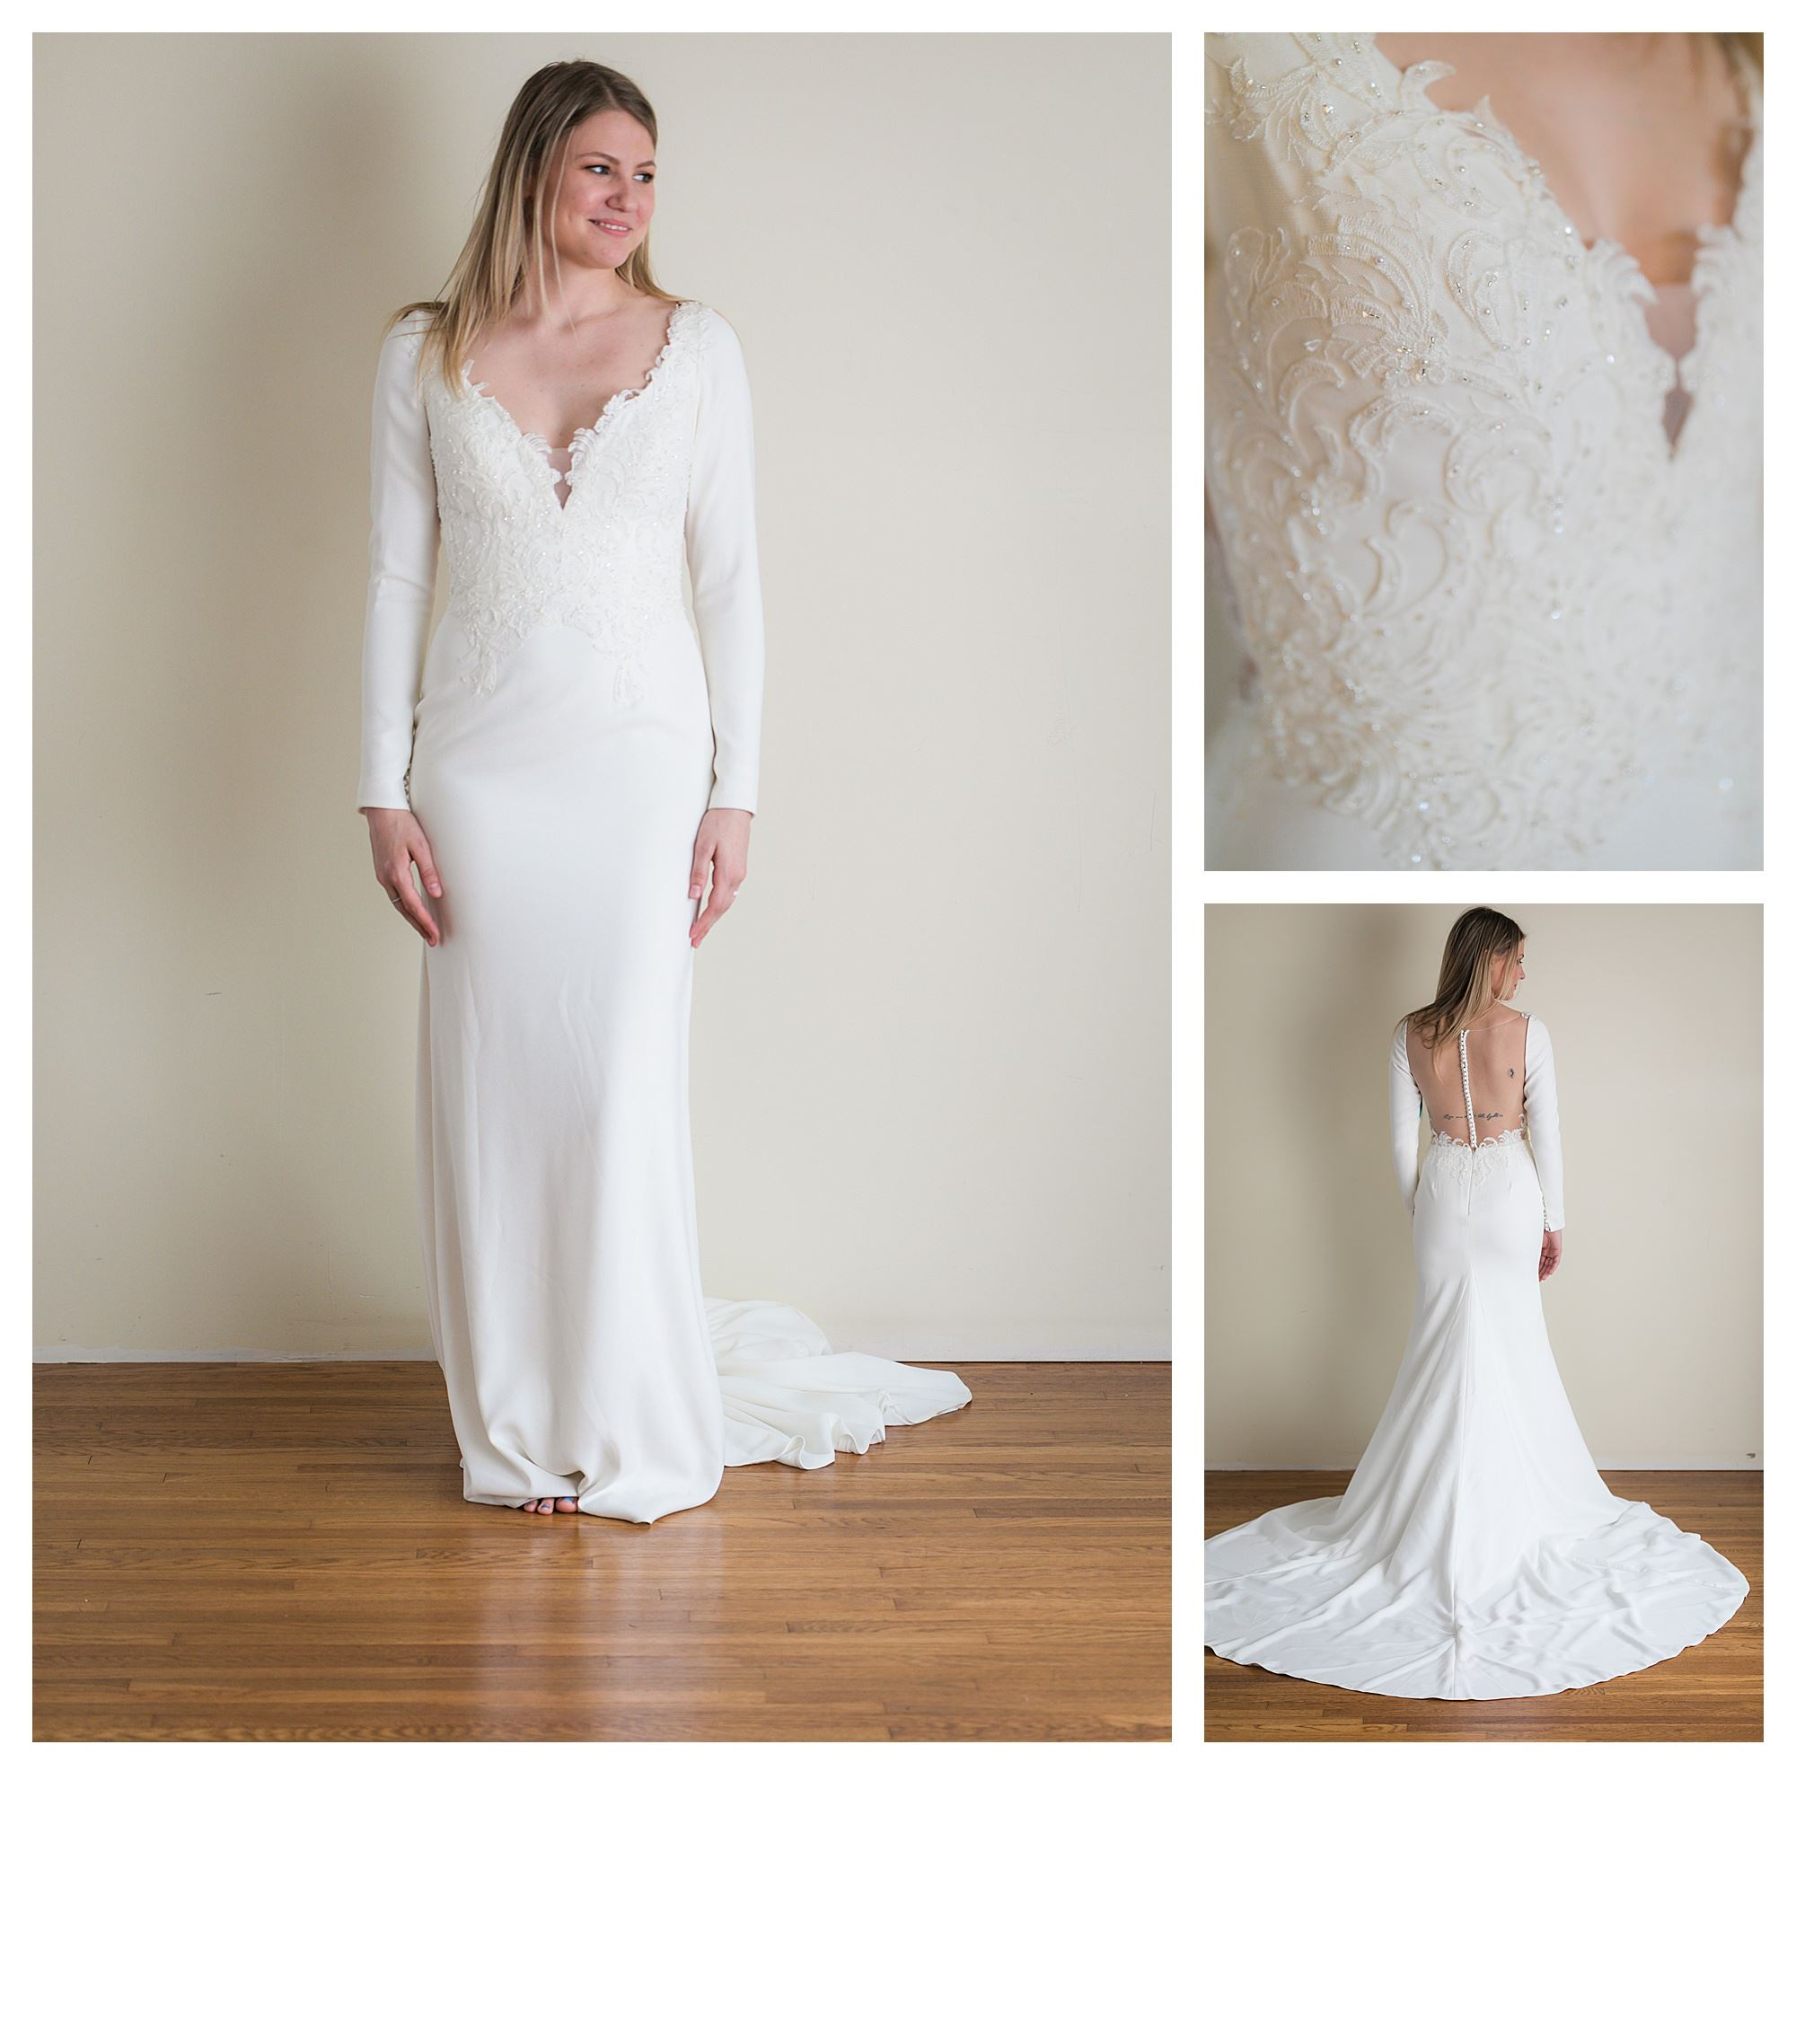 Sailor - Size 8 - Ivory - Originally priced $1399 - Sample box price $999